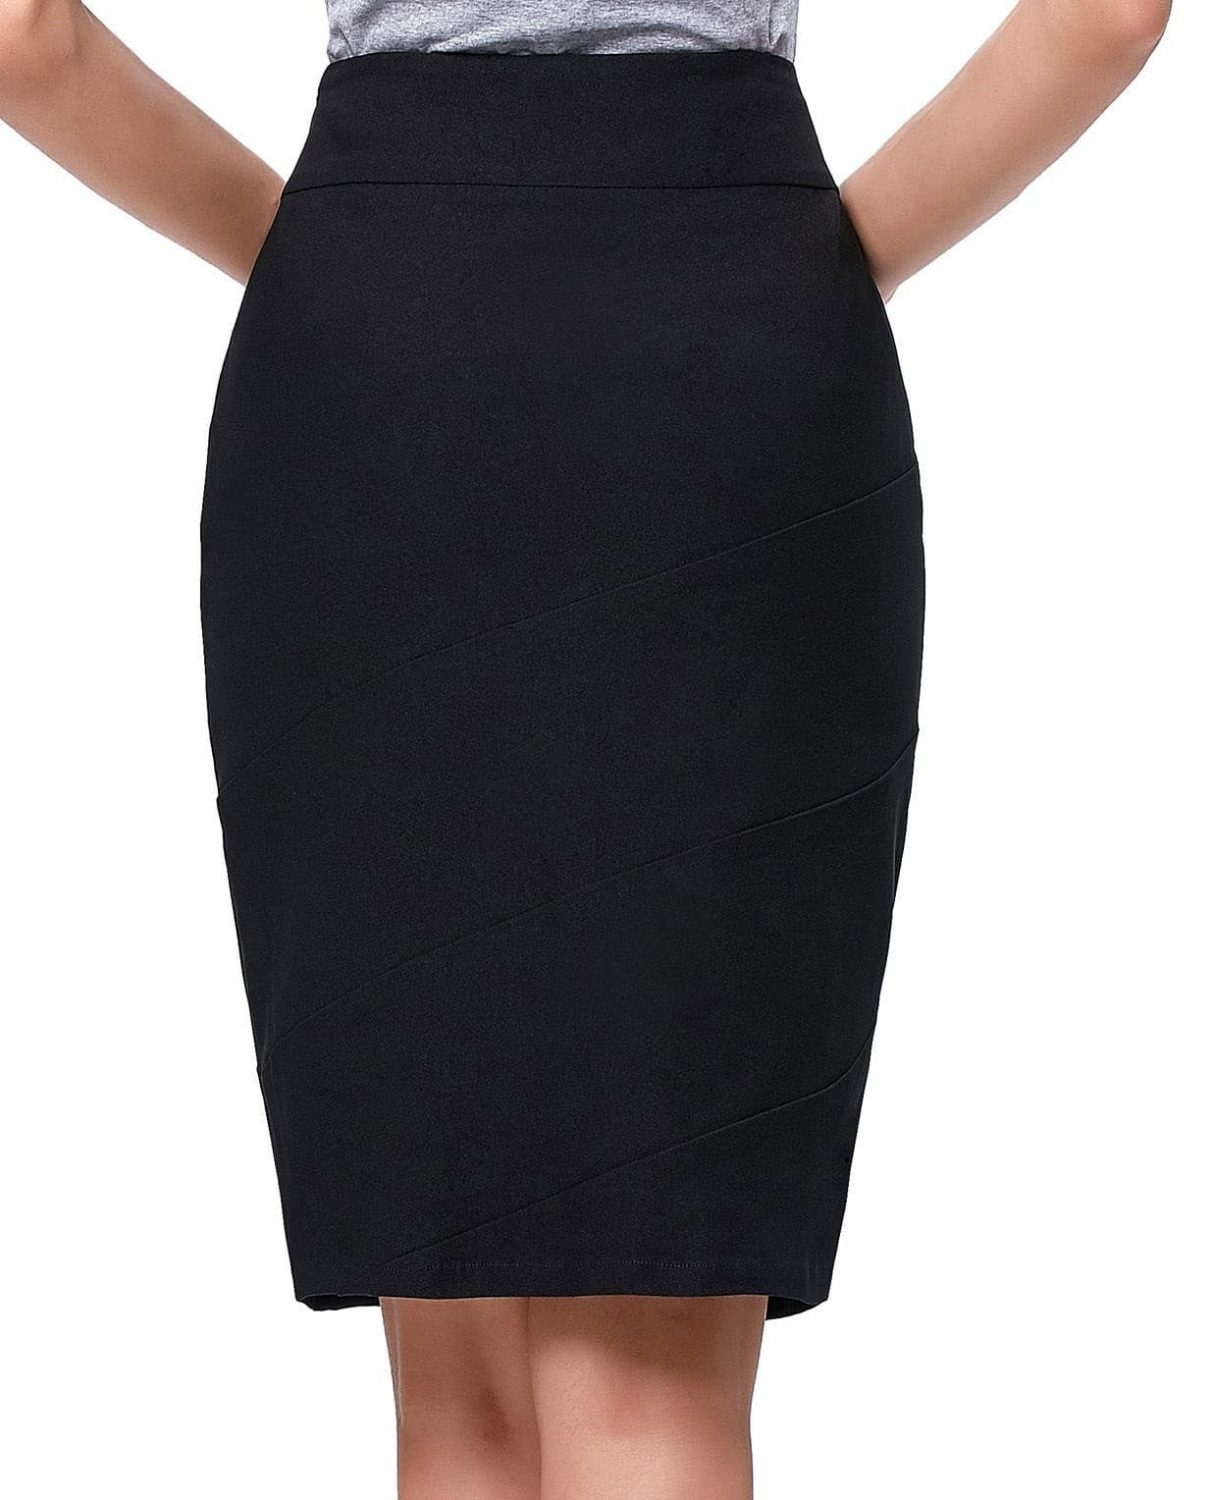 hug-those-hips-black-pencil-skirt-back